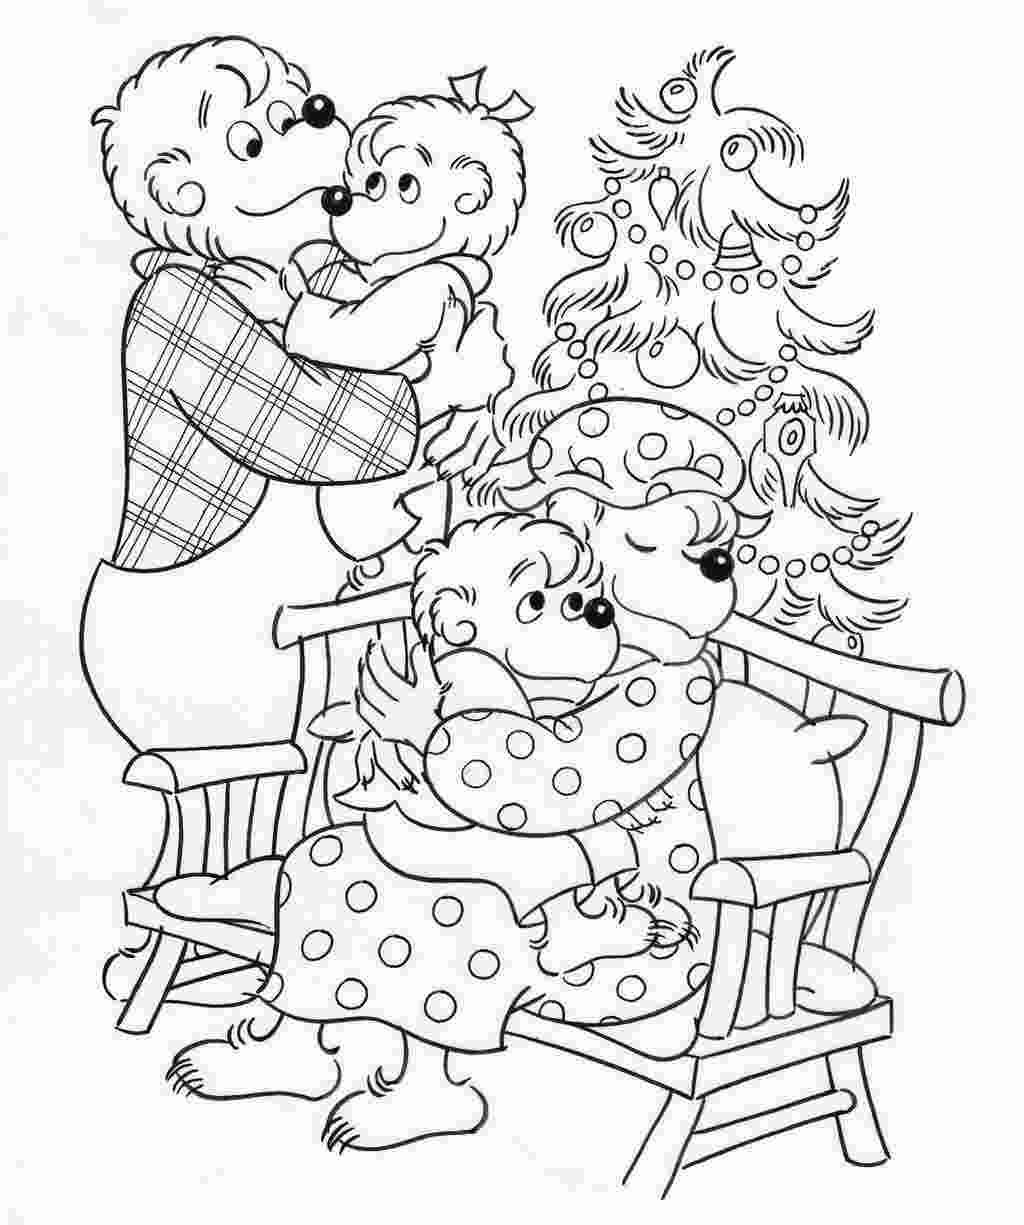 - Coloring Pages: Berenstain Bears And The Truth Coloring Pages